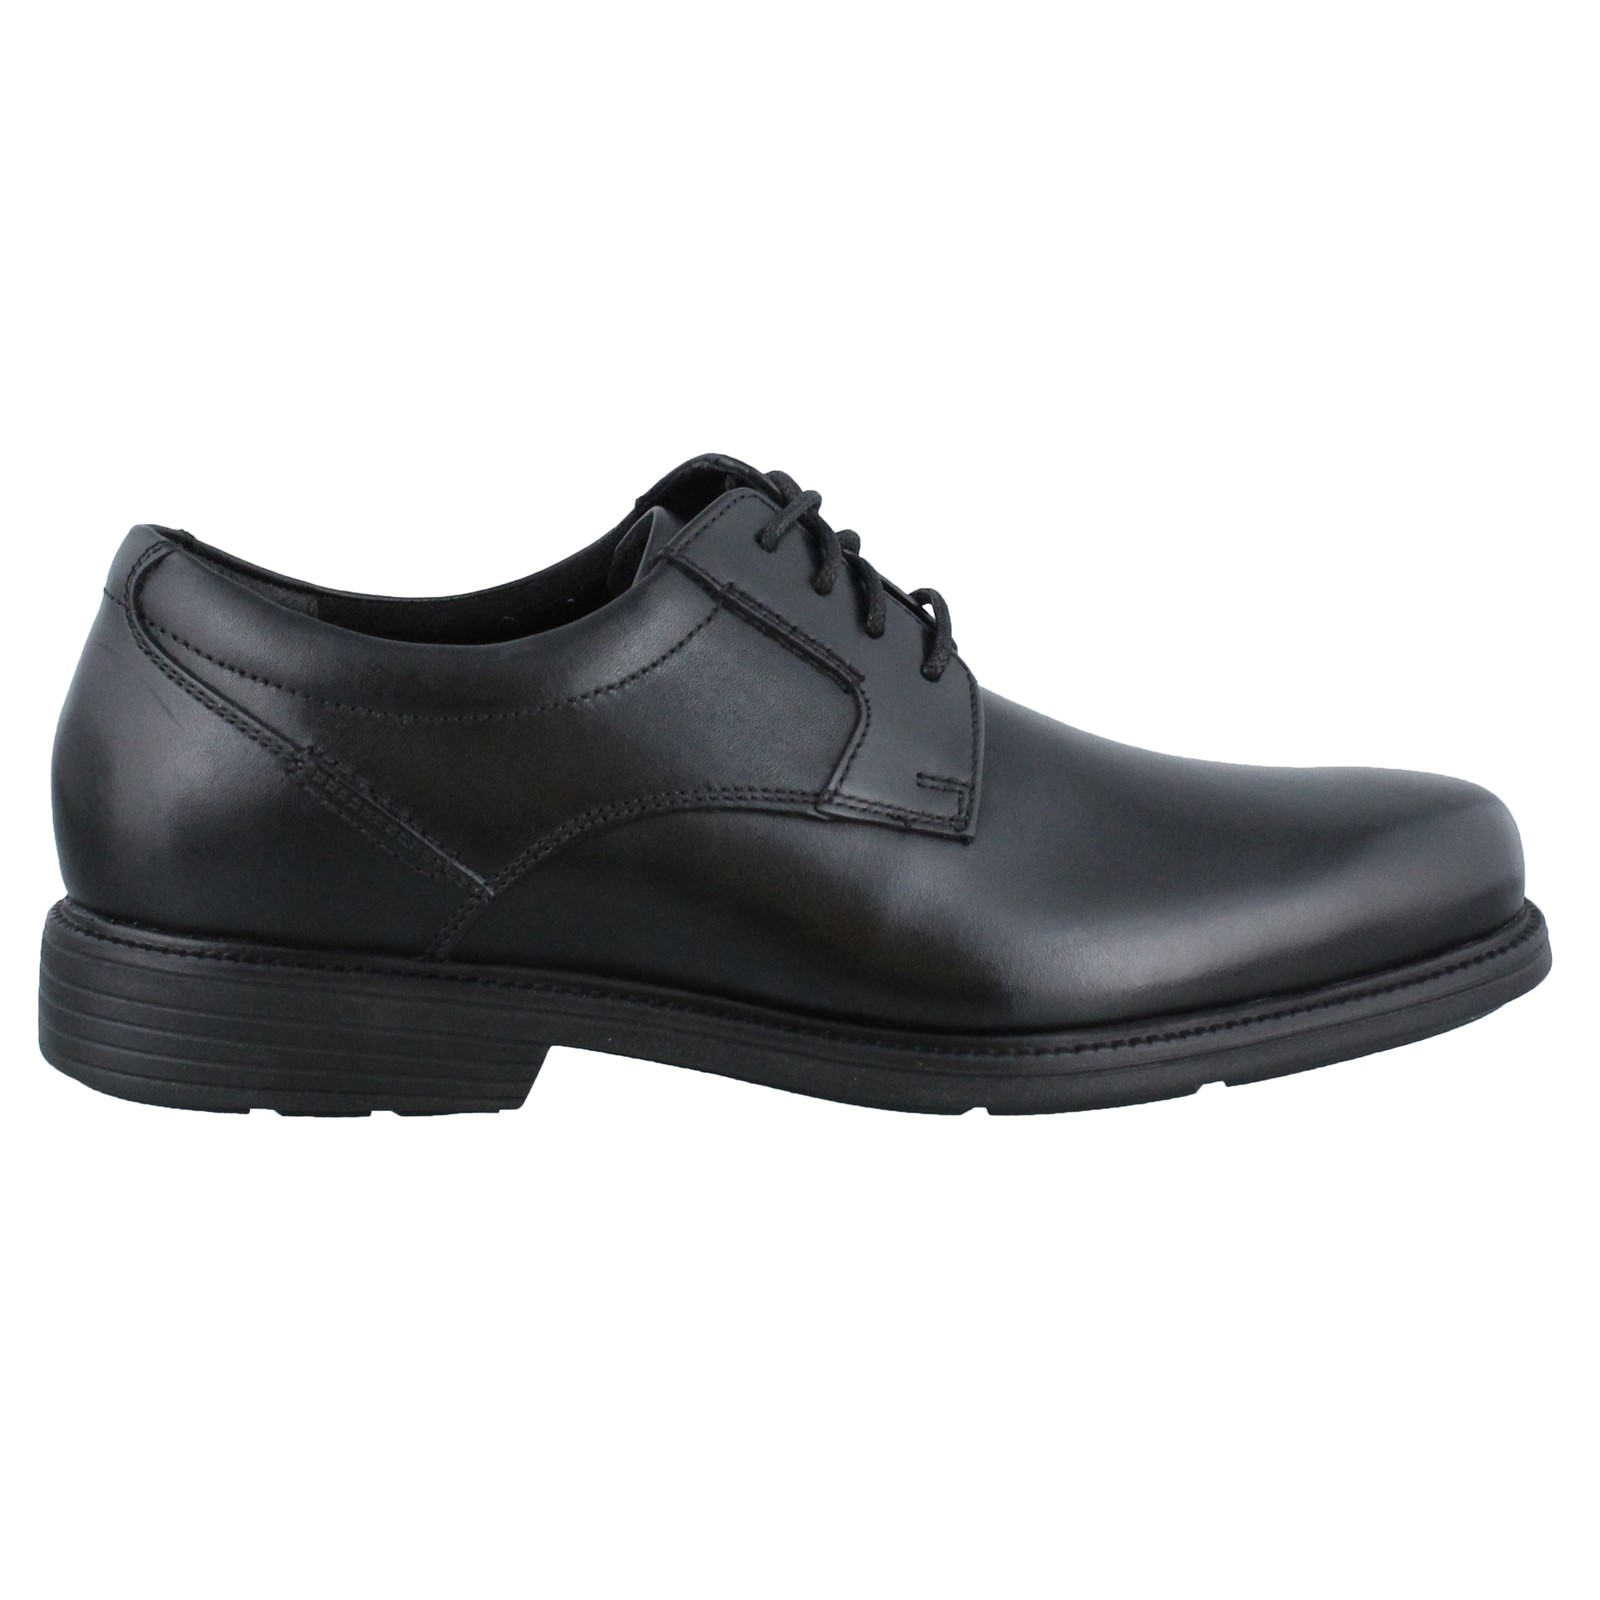 Men's Rockport, Charlesroad Plain Toe Lace up Shoe